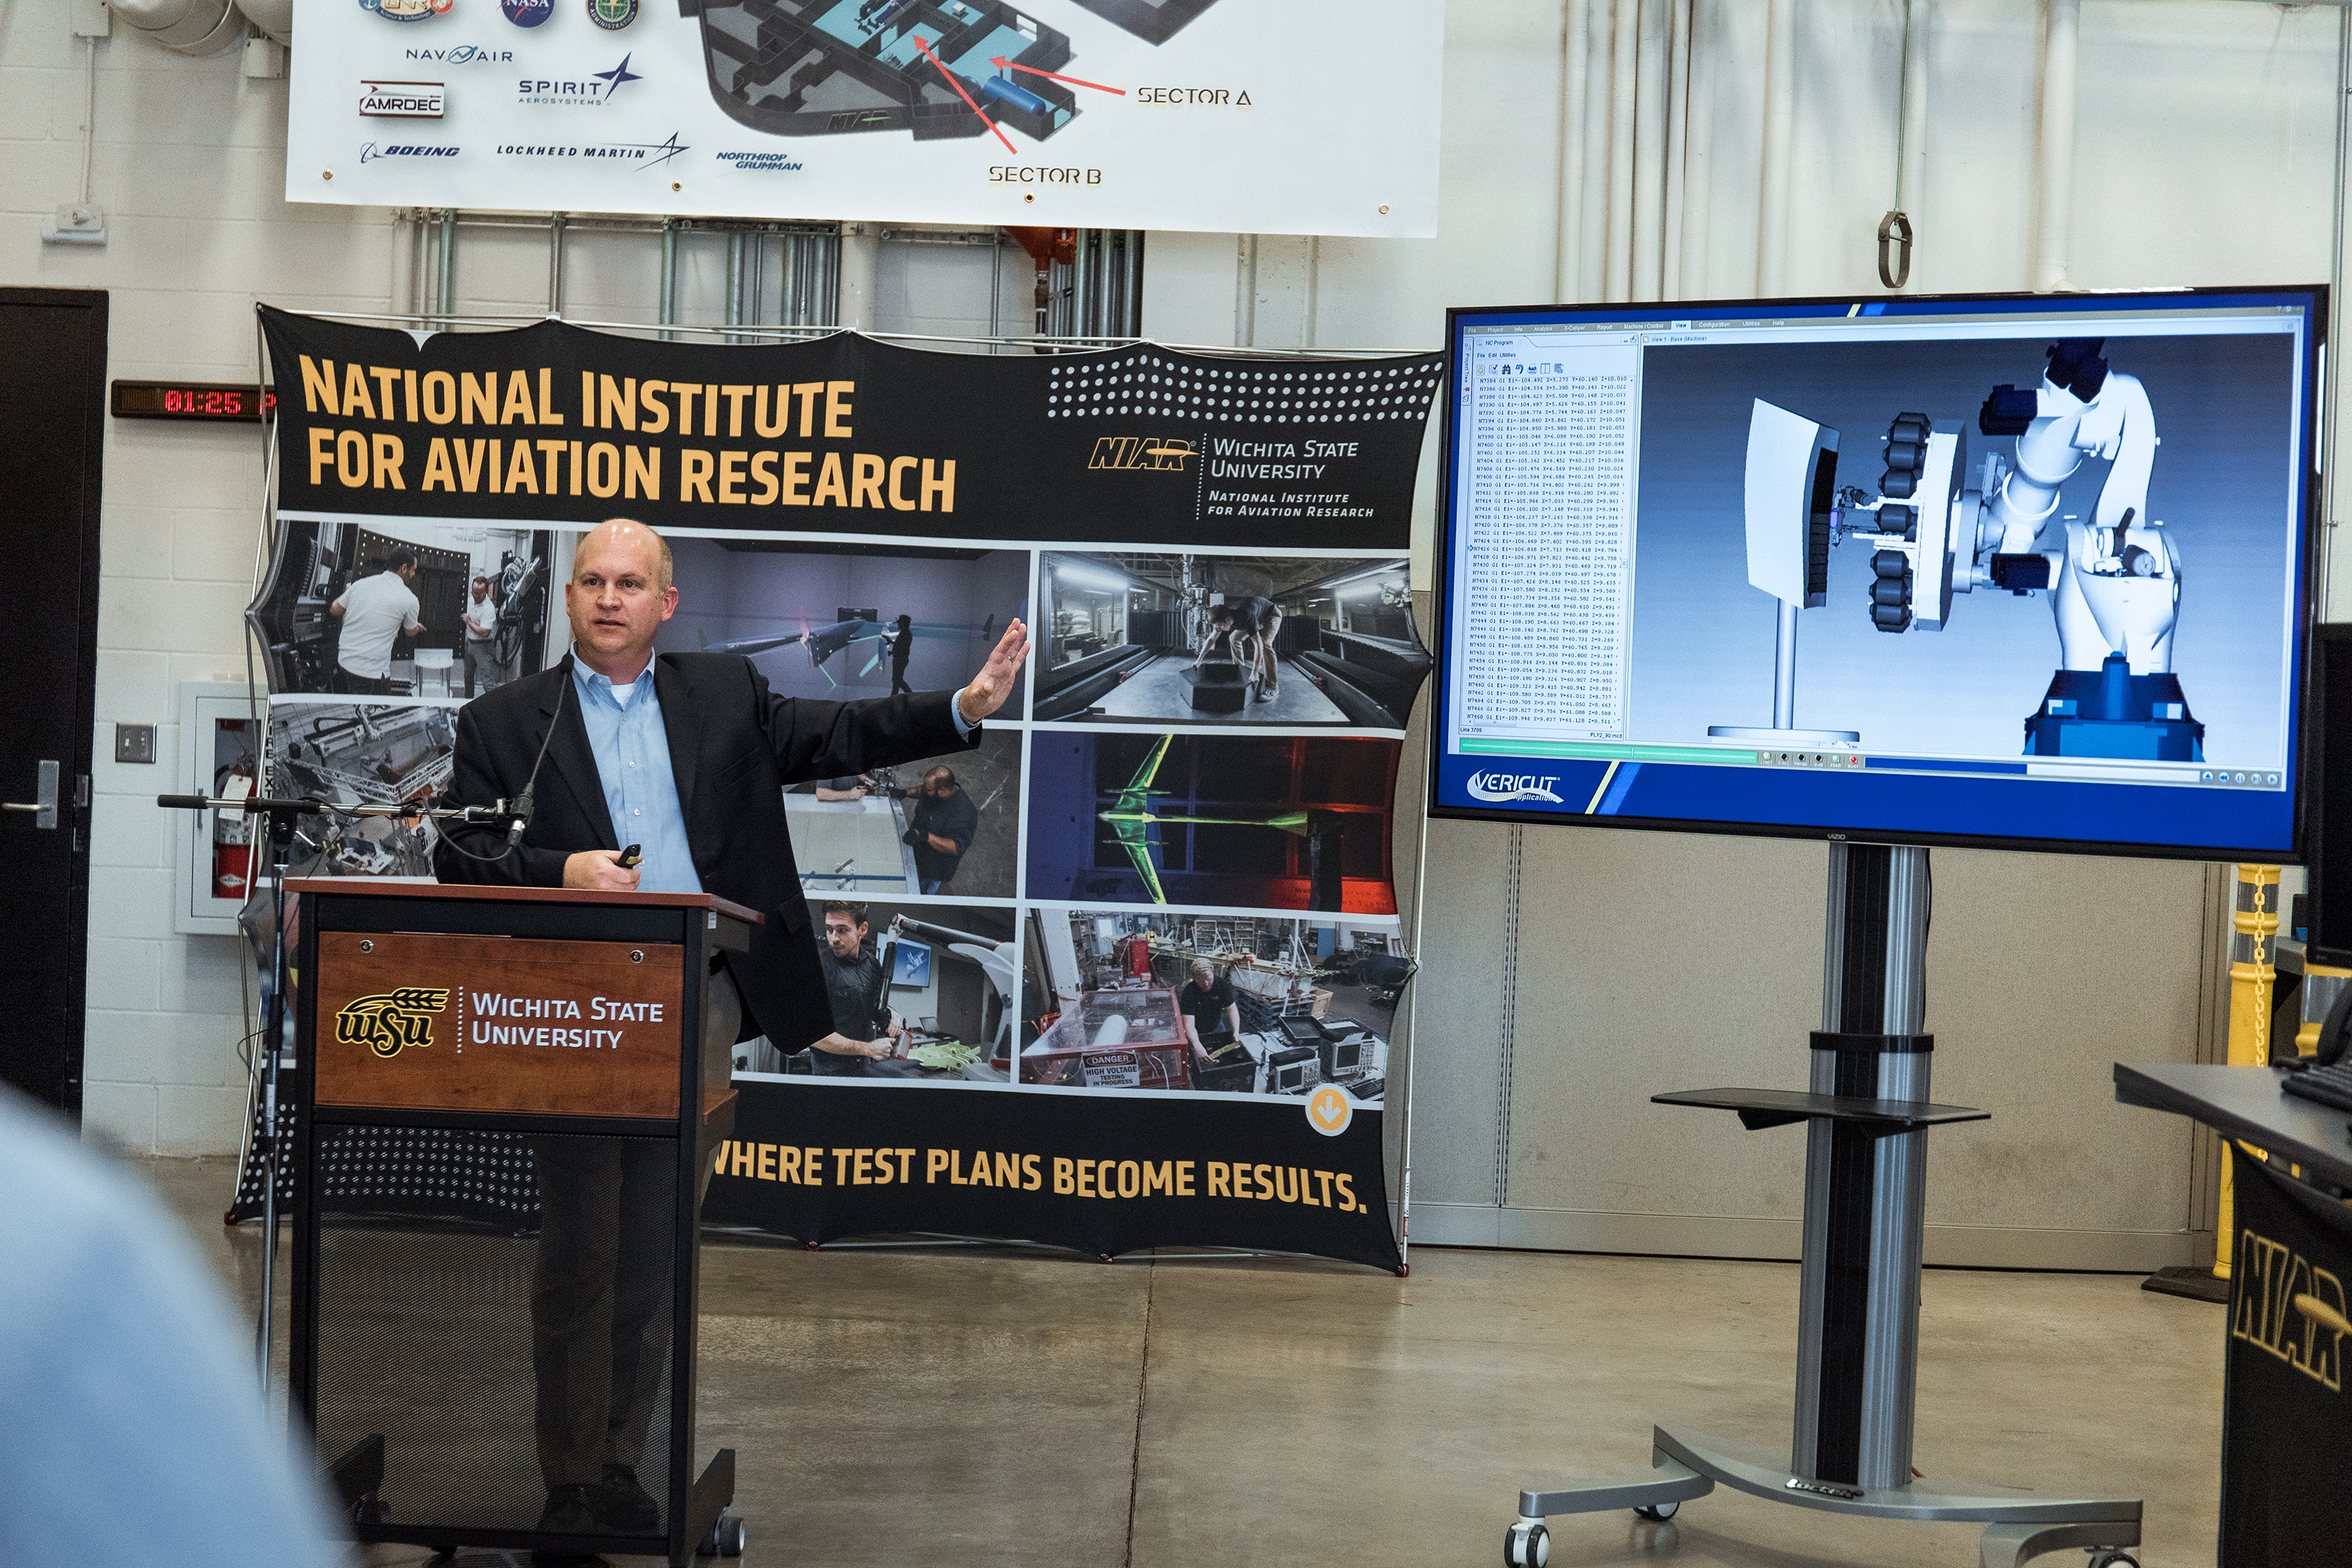 John Tomblin discusses the $2 million grant awarded to Wichita State to fund advanced composites technology.